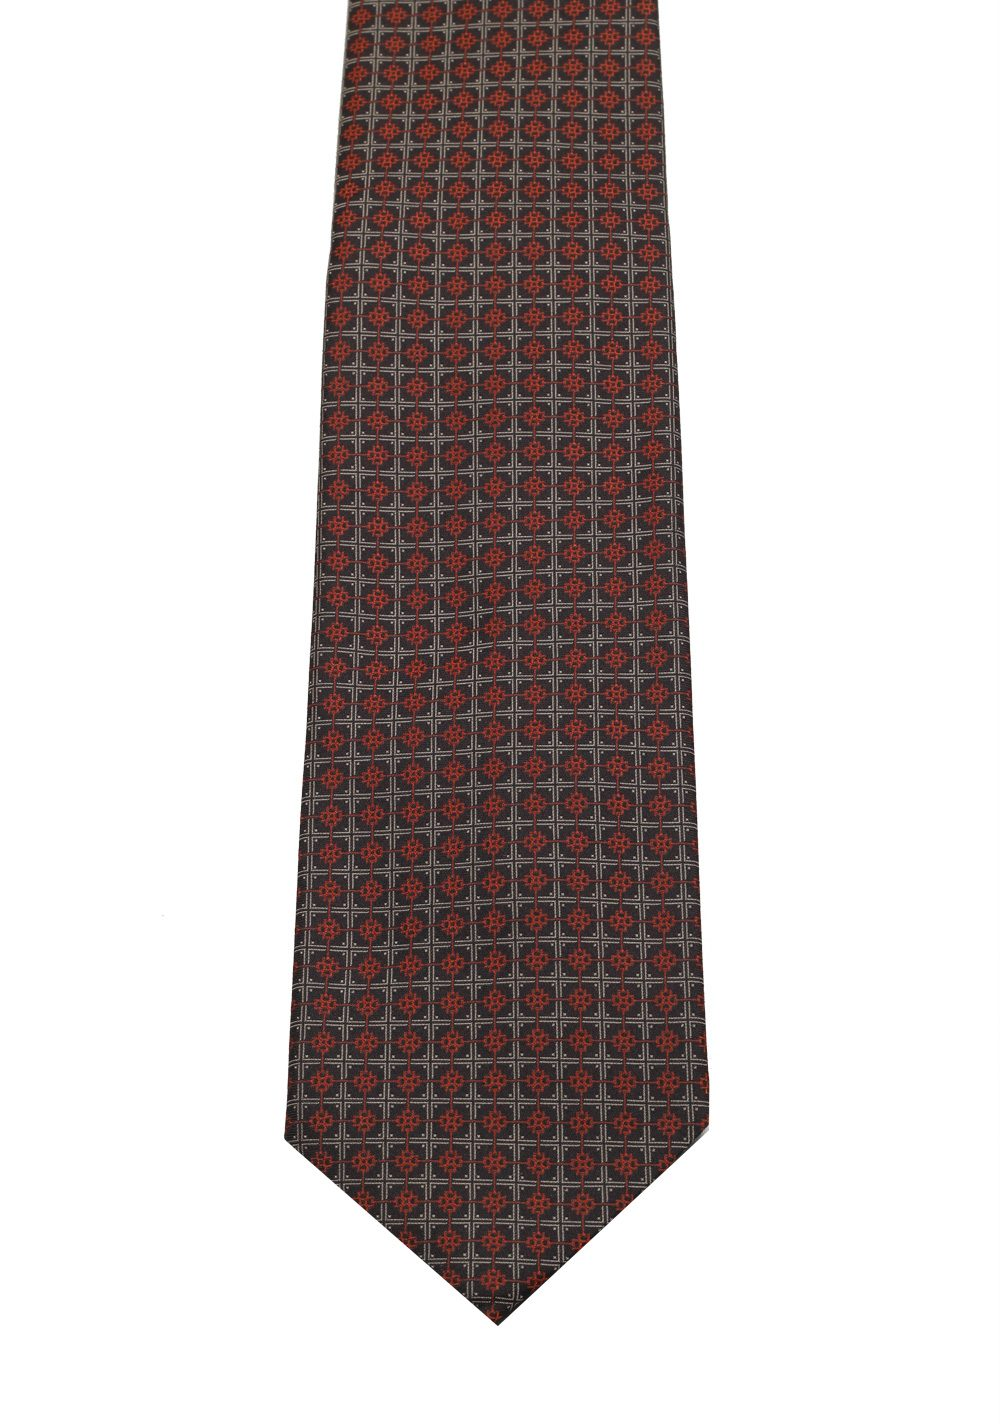 Gucci Gray / Brownish Patterned Tie | Costume Limité